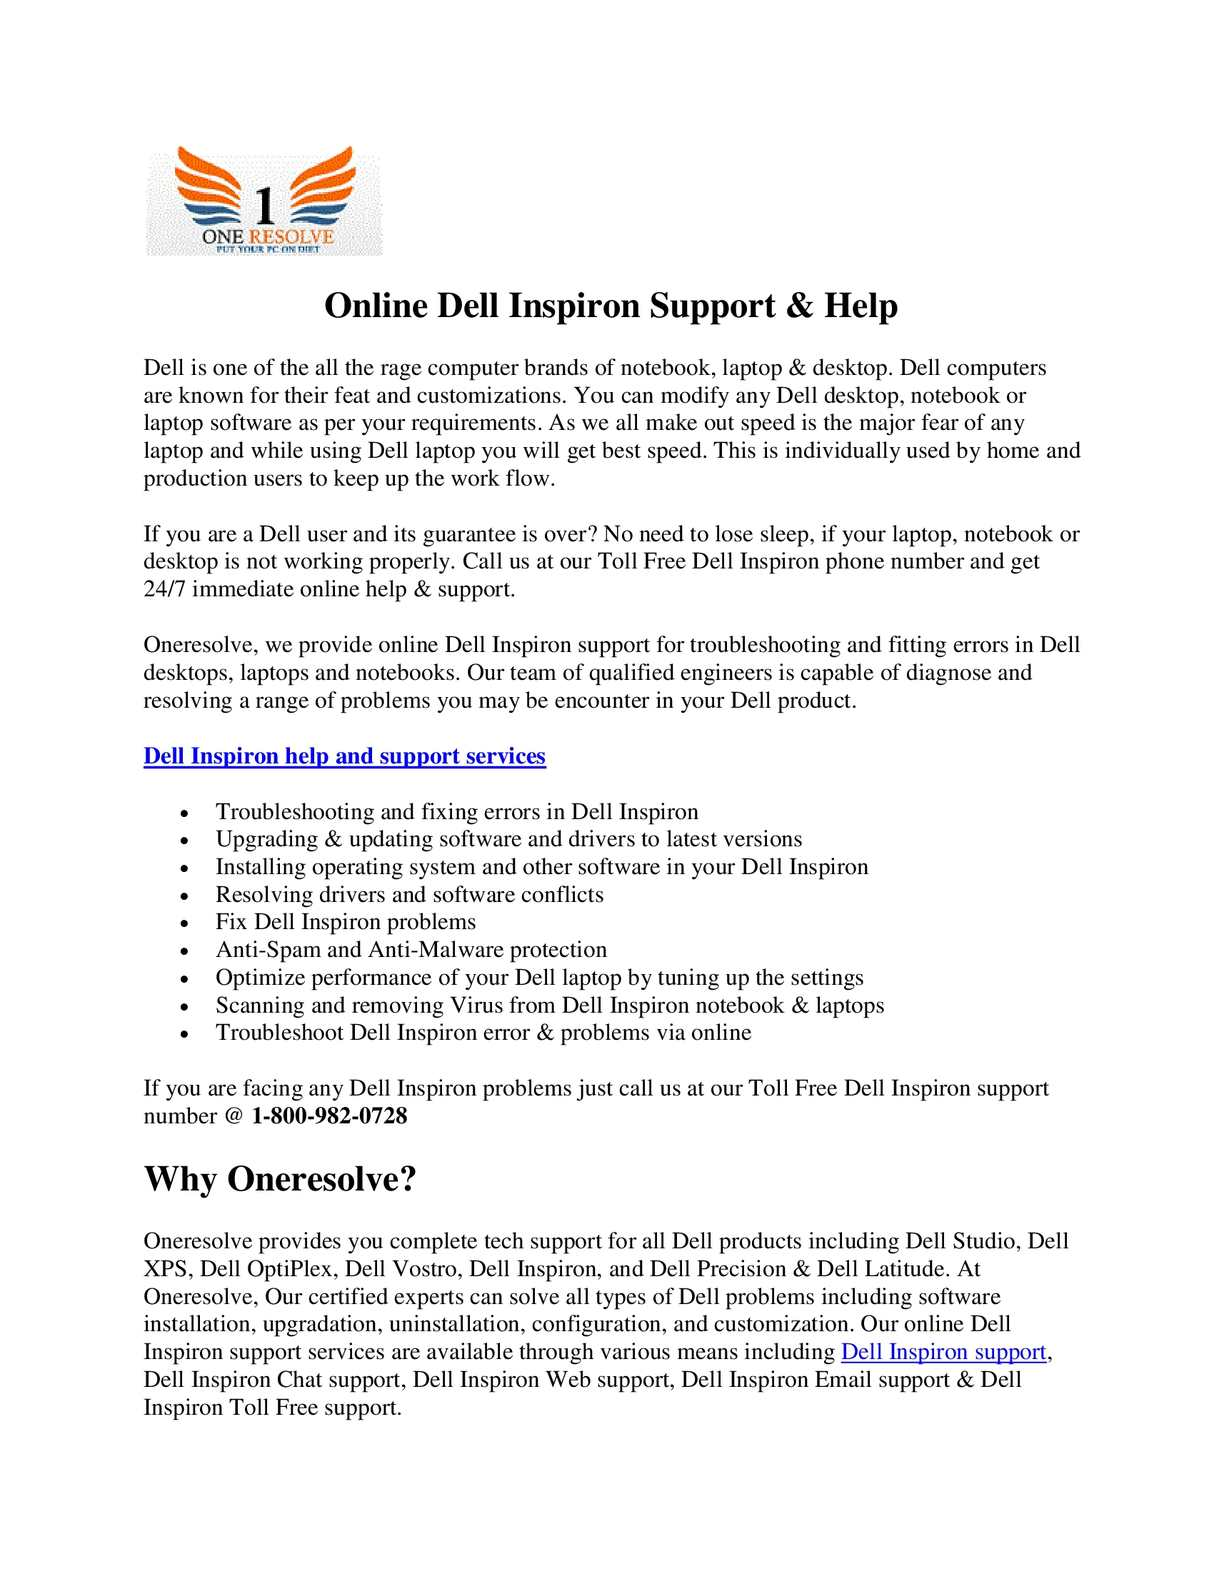 Calaméo - Online Dell Inspiron Support & Help